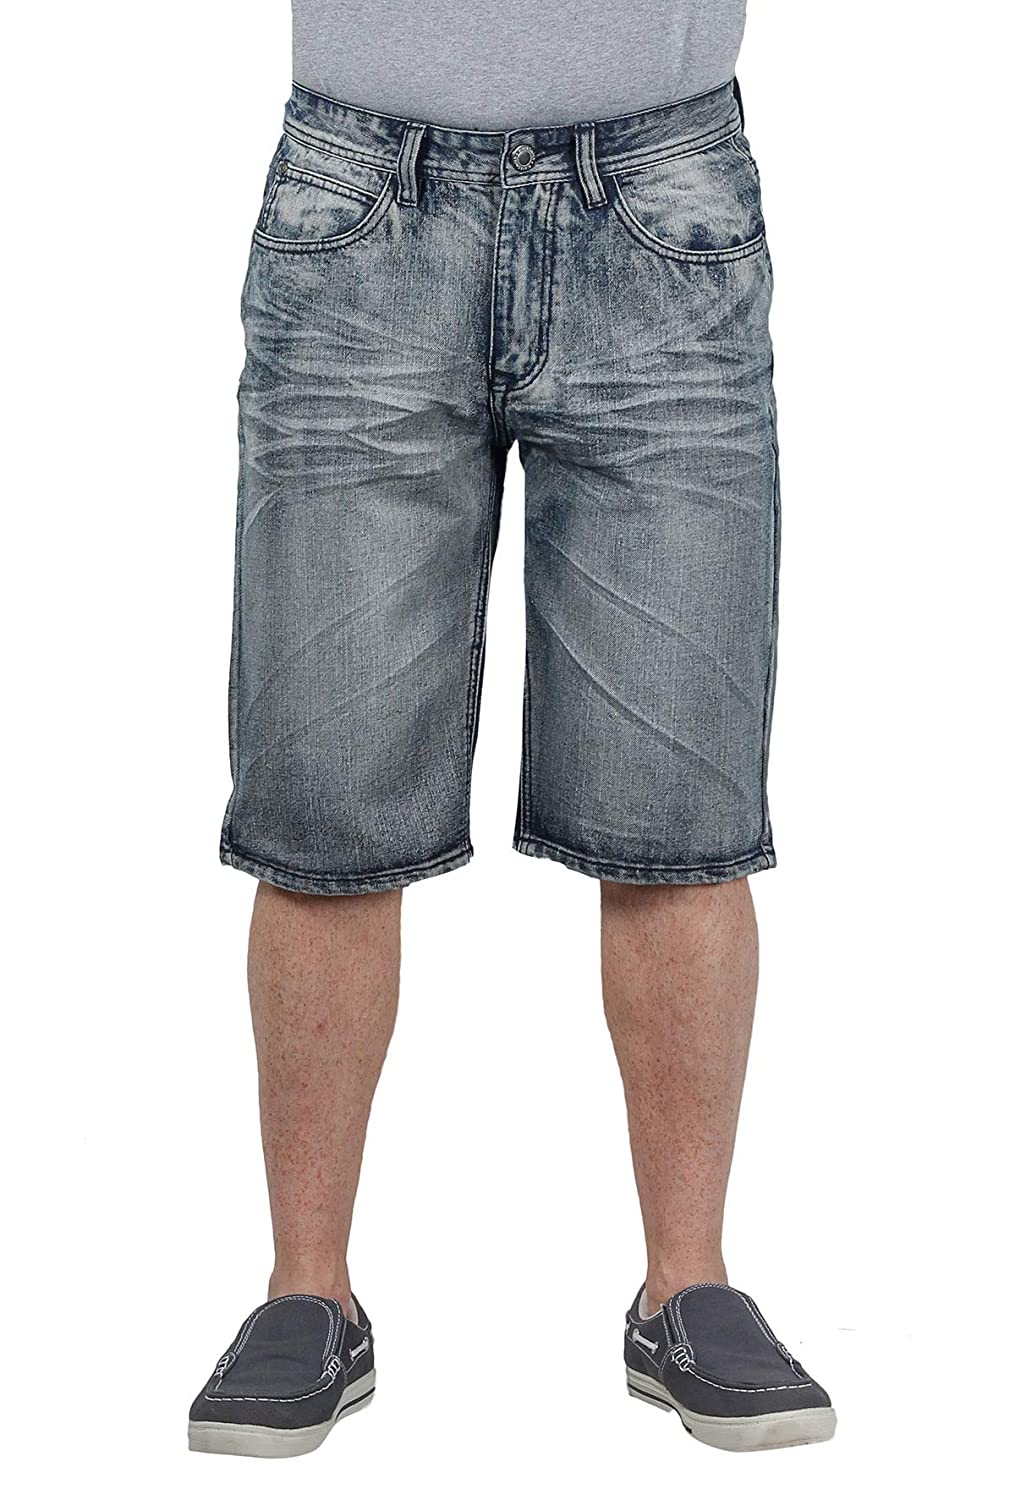 Blacksmith Mens Long Denim Short